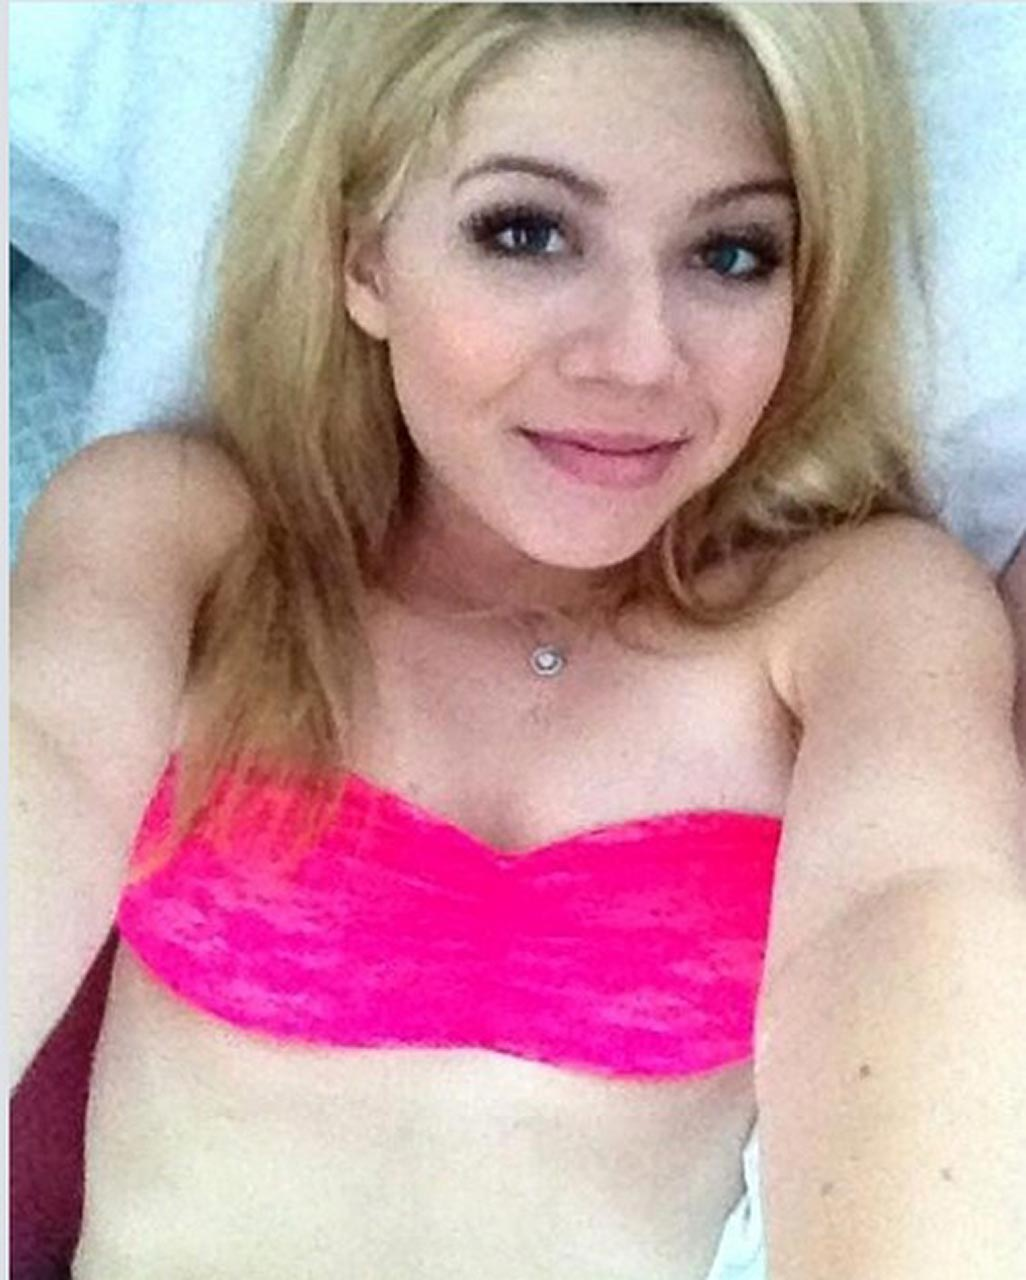 leaked Jennette nudes mccurdy